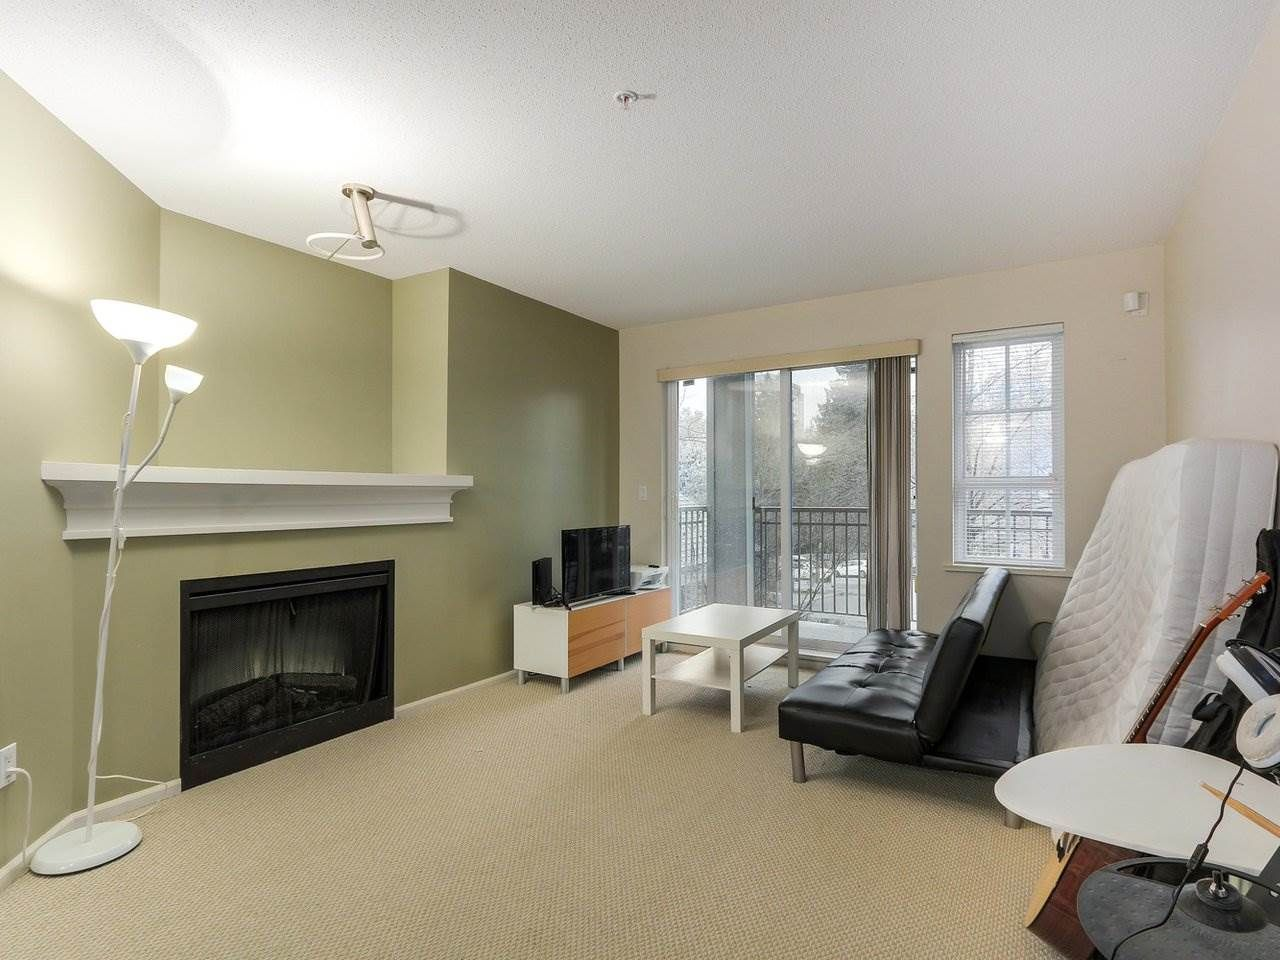 Photo 2: Photos: 205 3388 MORREY Court in Burnaby: Sullivan Heights Condo for sale (Burnaby North)  : MLS®# R2326824